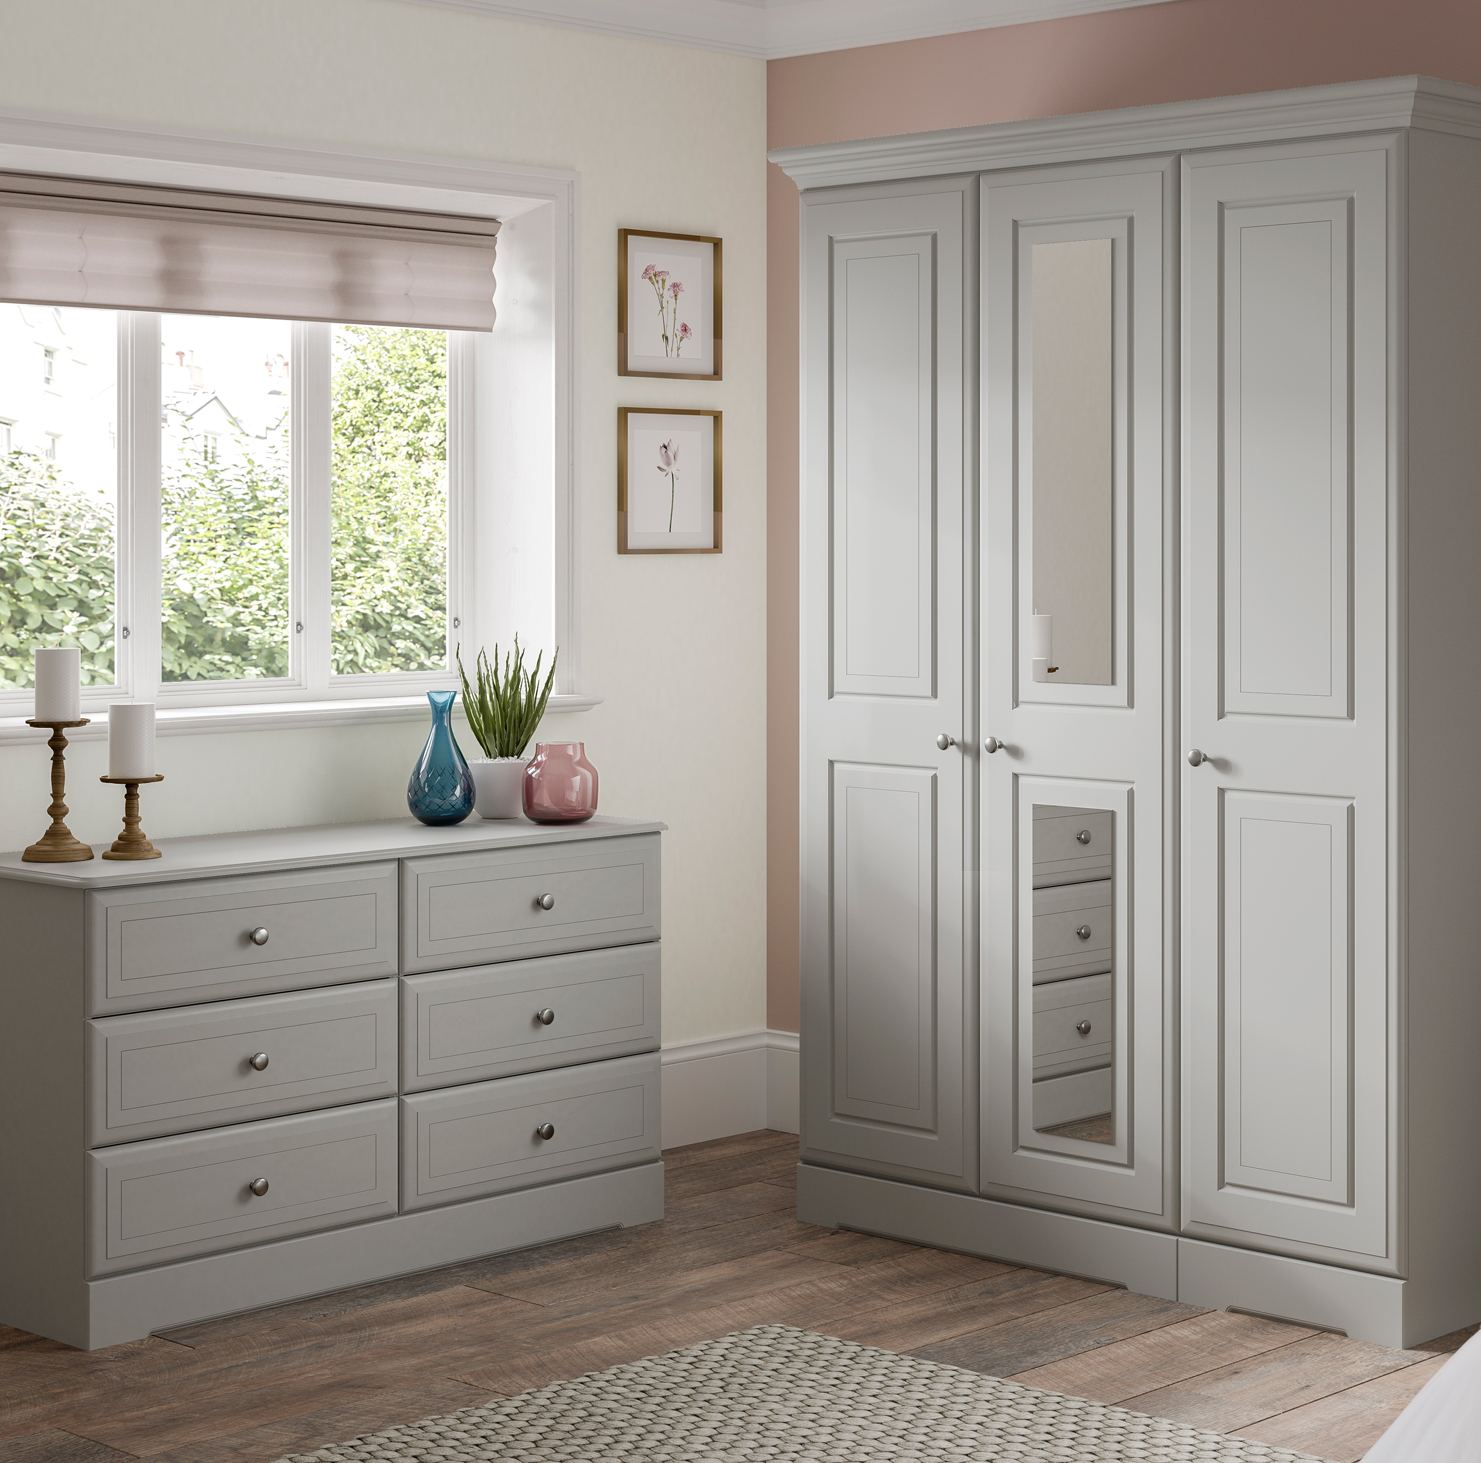 Kingstown Nicole Grey bedroom furniture